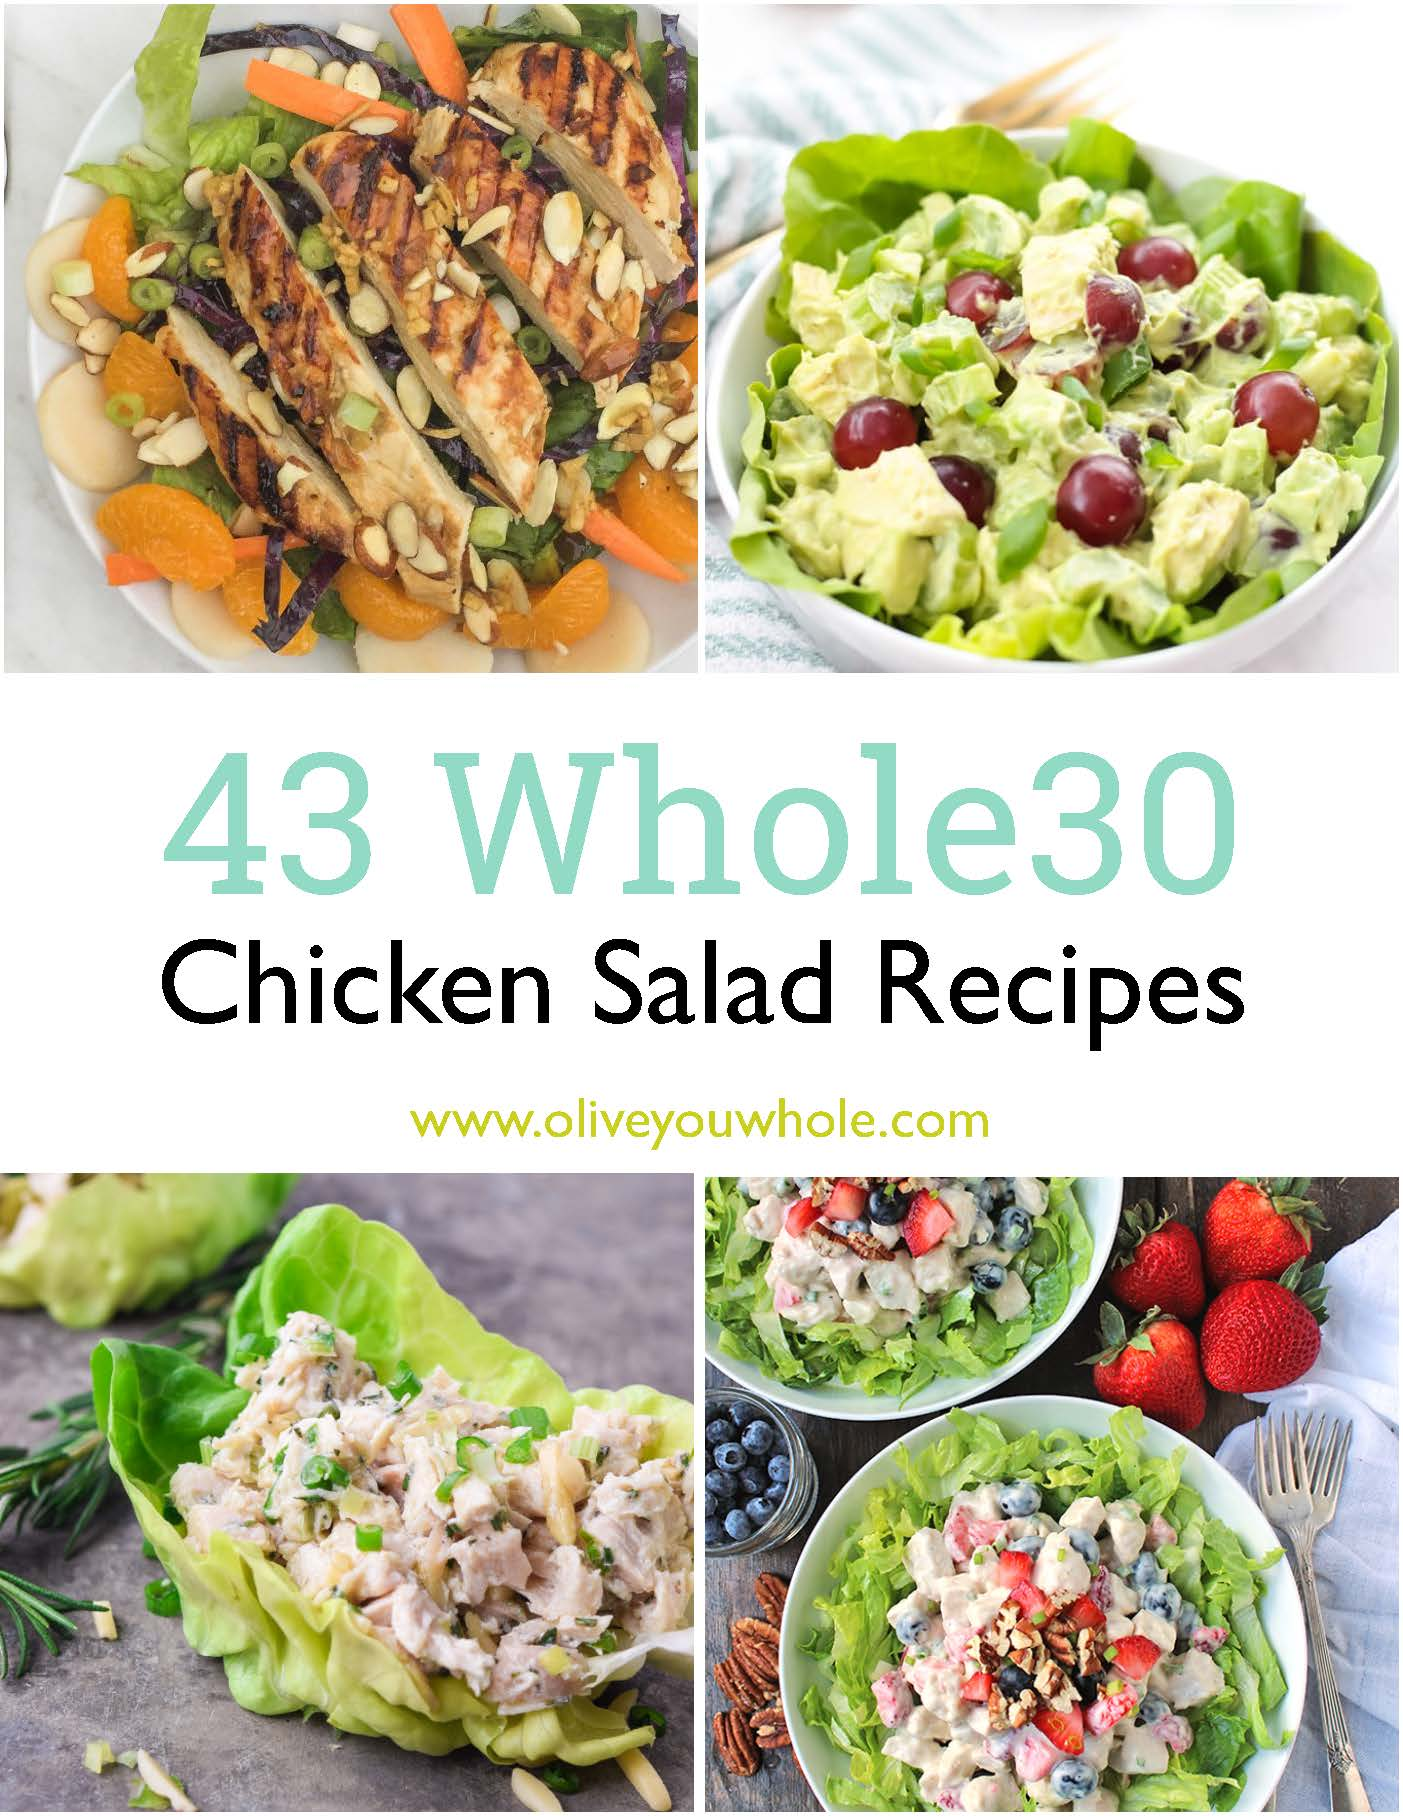 43 Whole30 Chicken Salad Recipes (Gluten, Dairy, and Grain Free)